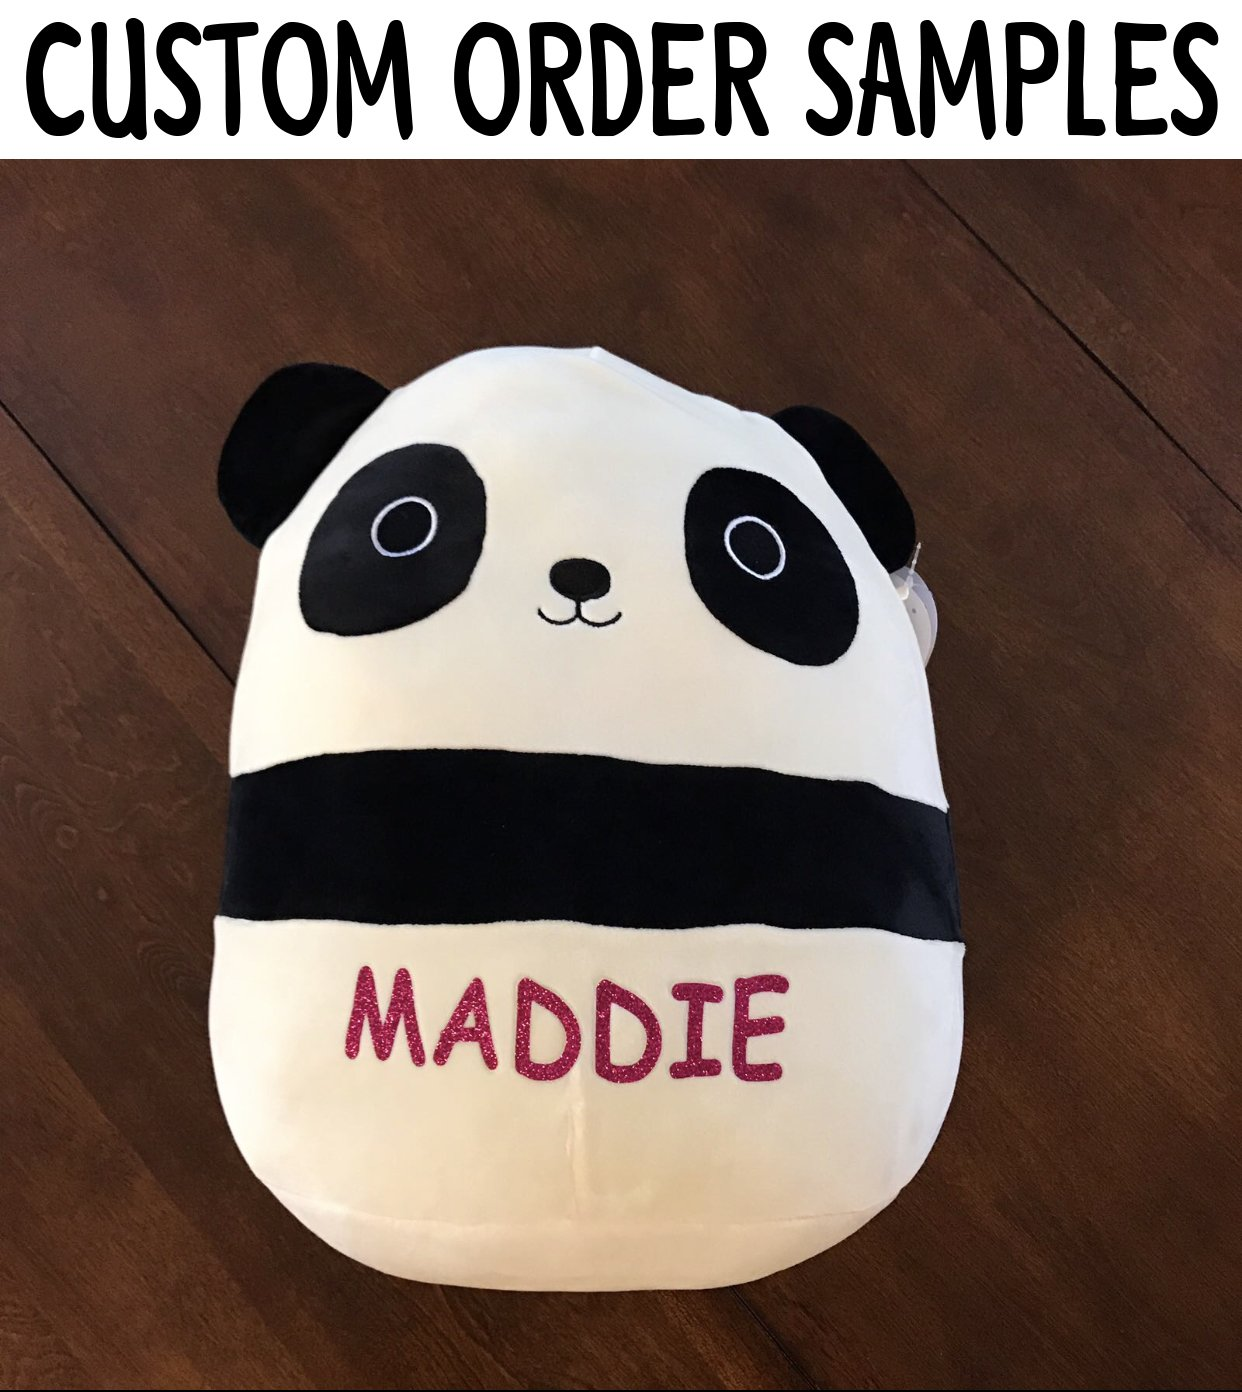 Customized Kellytoy Squishmallow Harriet The Owl Super Soft Plush Toy Pillow Pet Pal Buddy (8 inches)